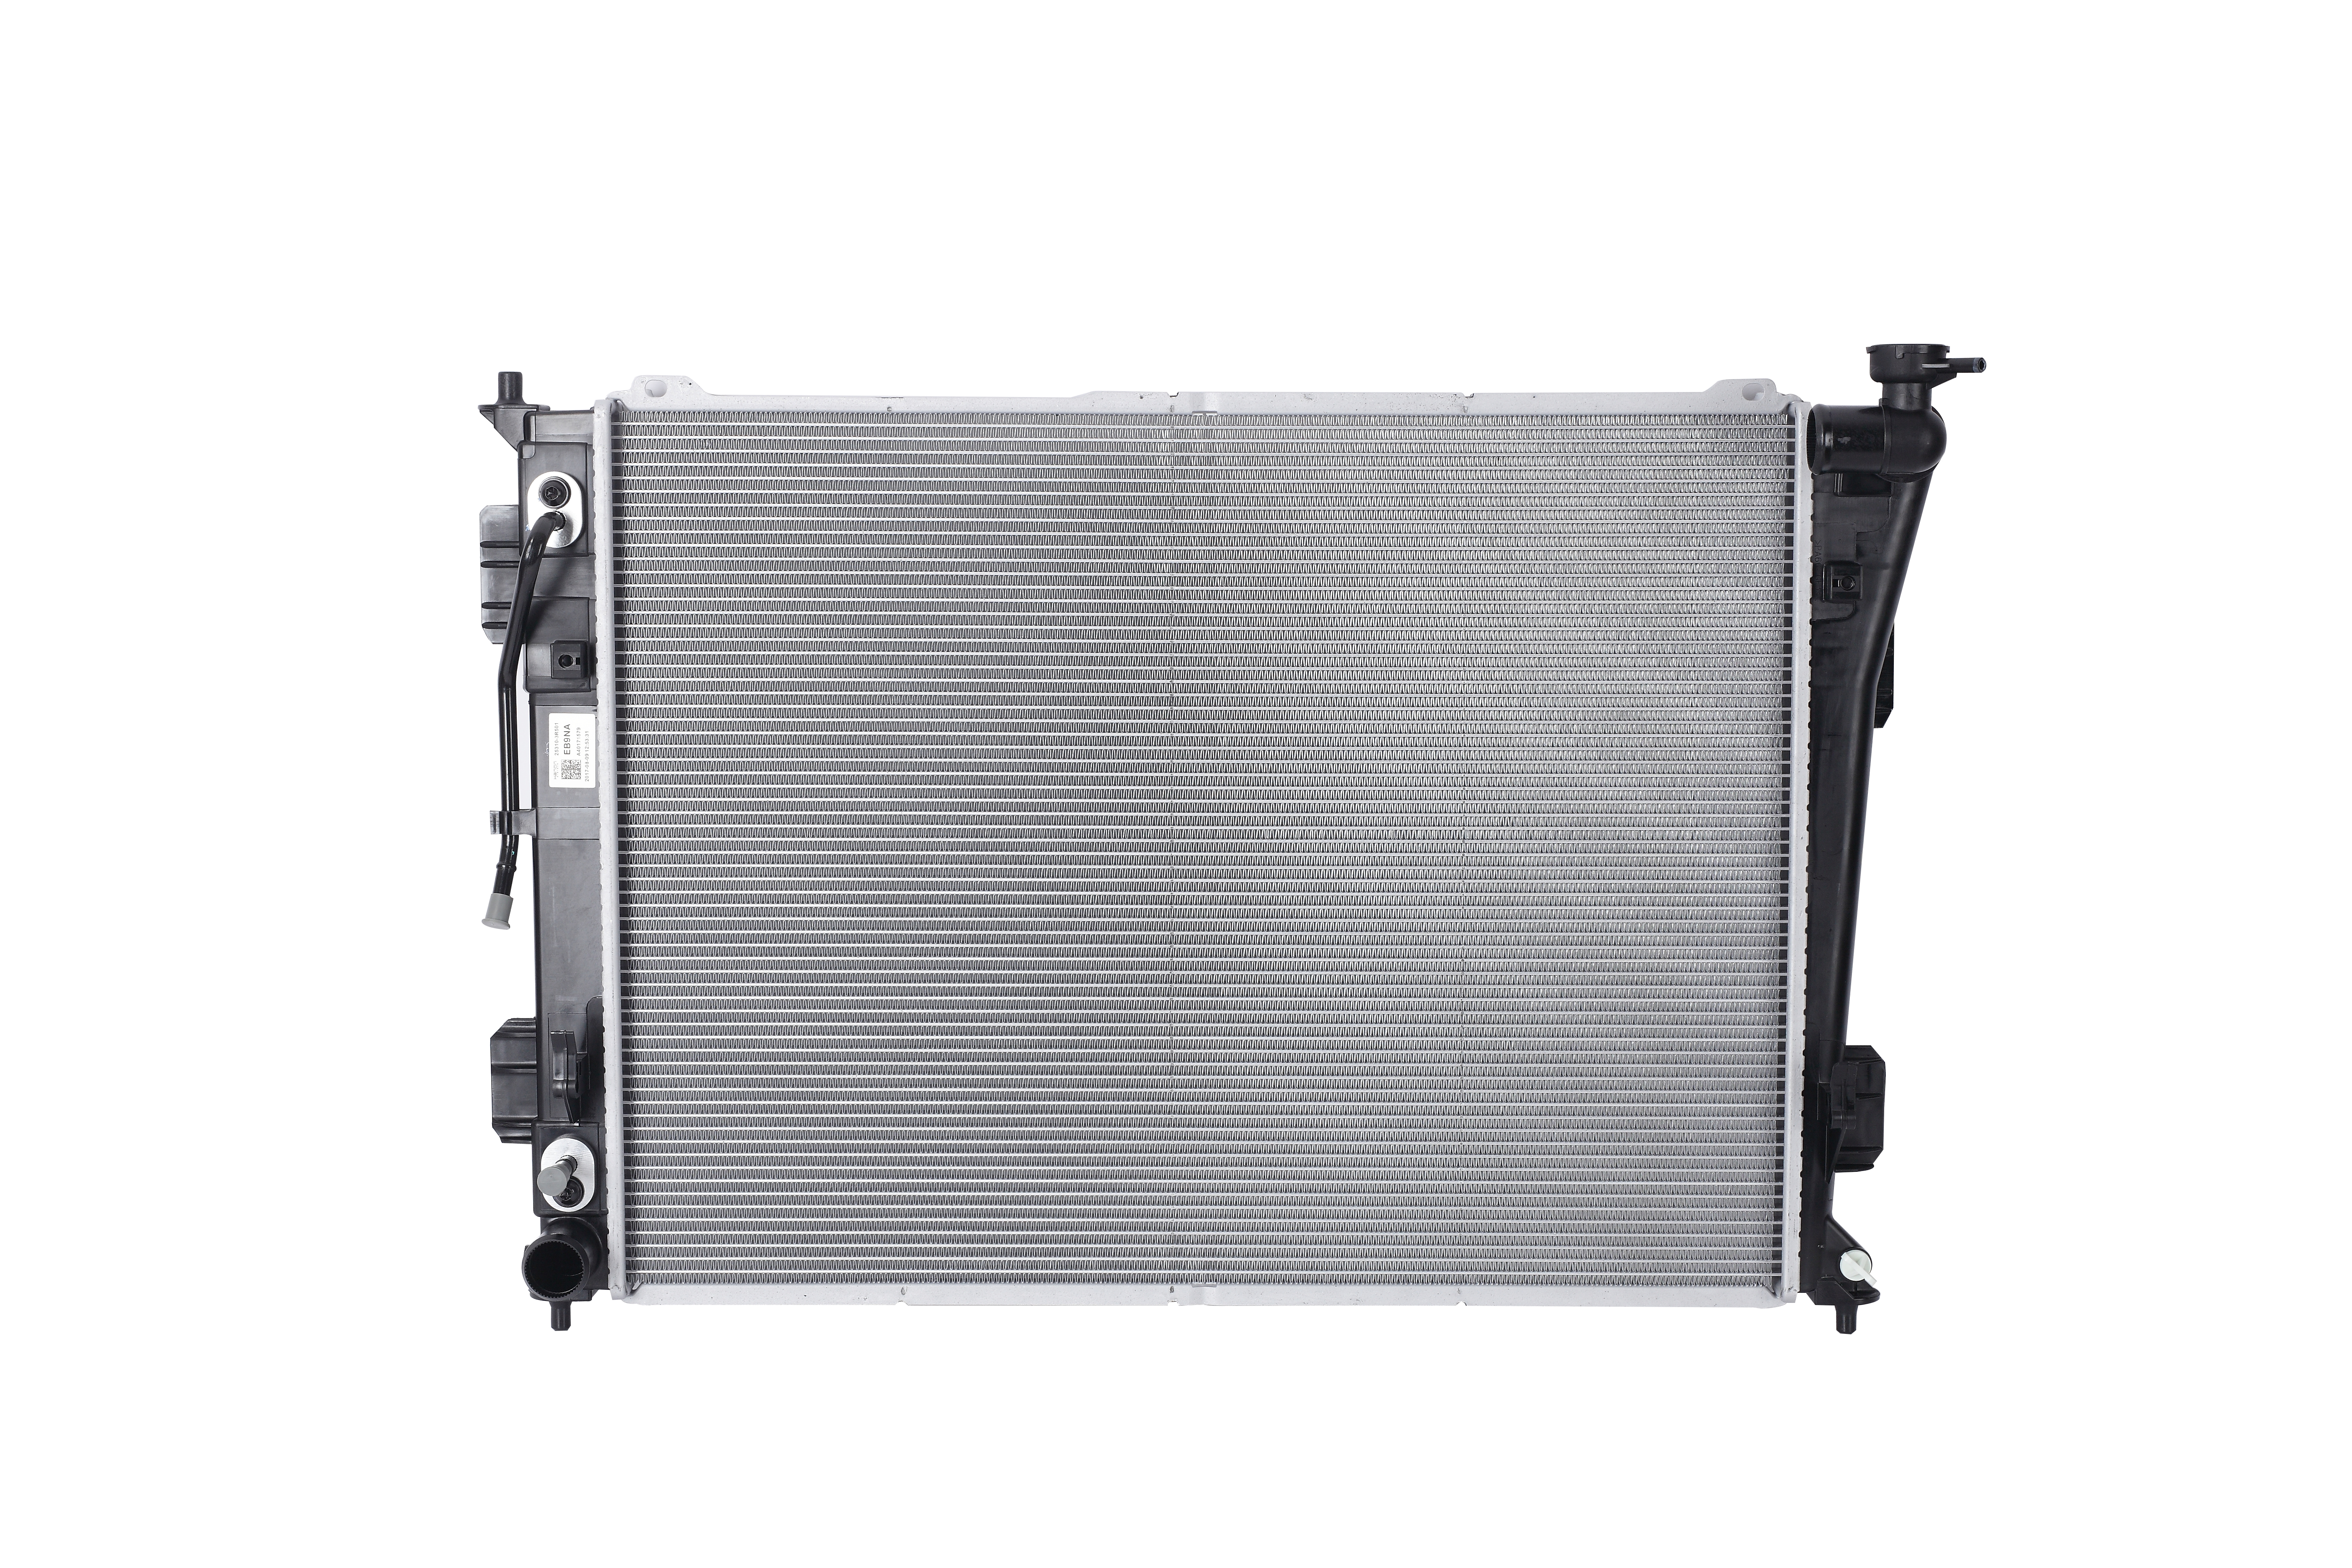 The radiator is necessary to regulate engine temperature through a heat exchange process involving r...